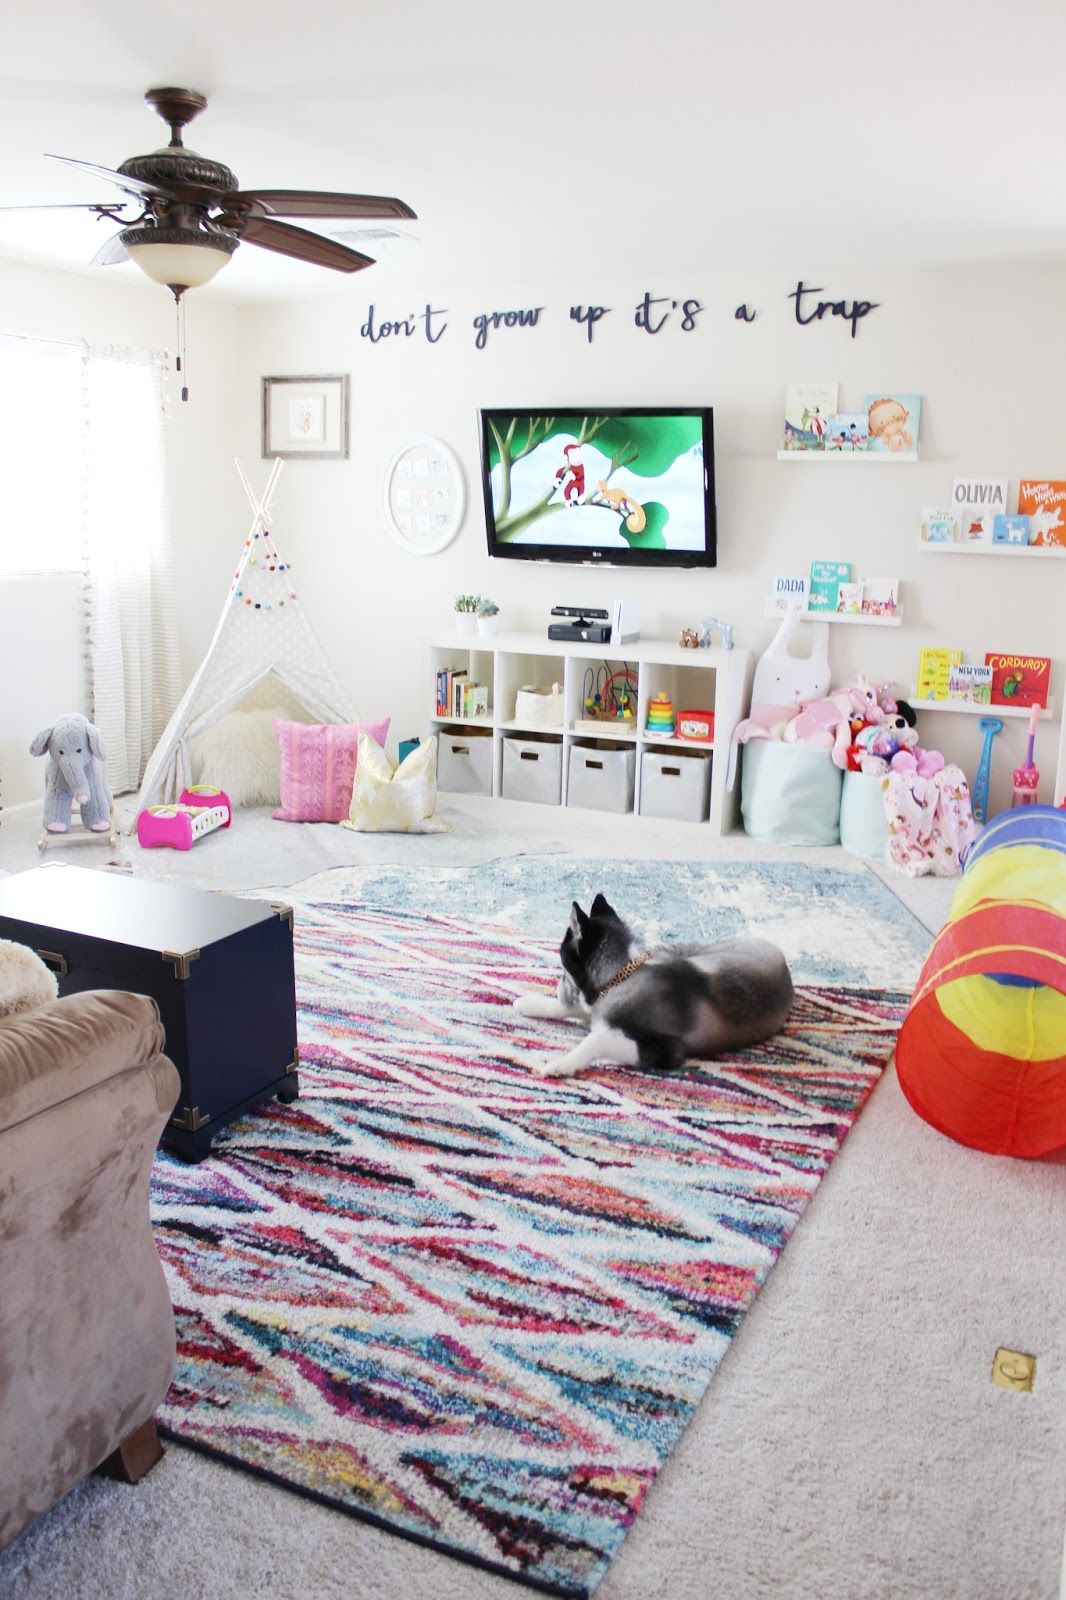 Playroom Reveal By Aubrey Kinch With Rugs Usa S Tracce Tc01 Distressed Foggy Medallion Rug Albina Streaked Trellis Cr01 Rug And Seren For The Home Baby Playroom Colorful Playroom Loft Playroom